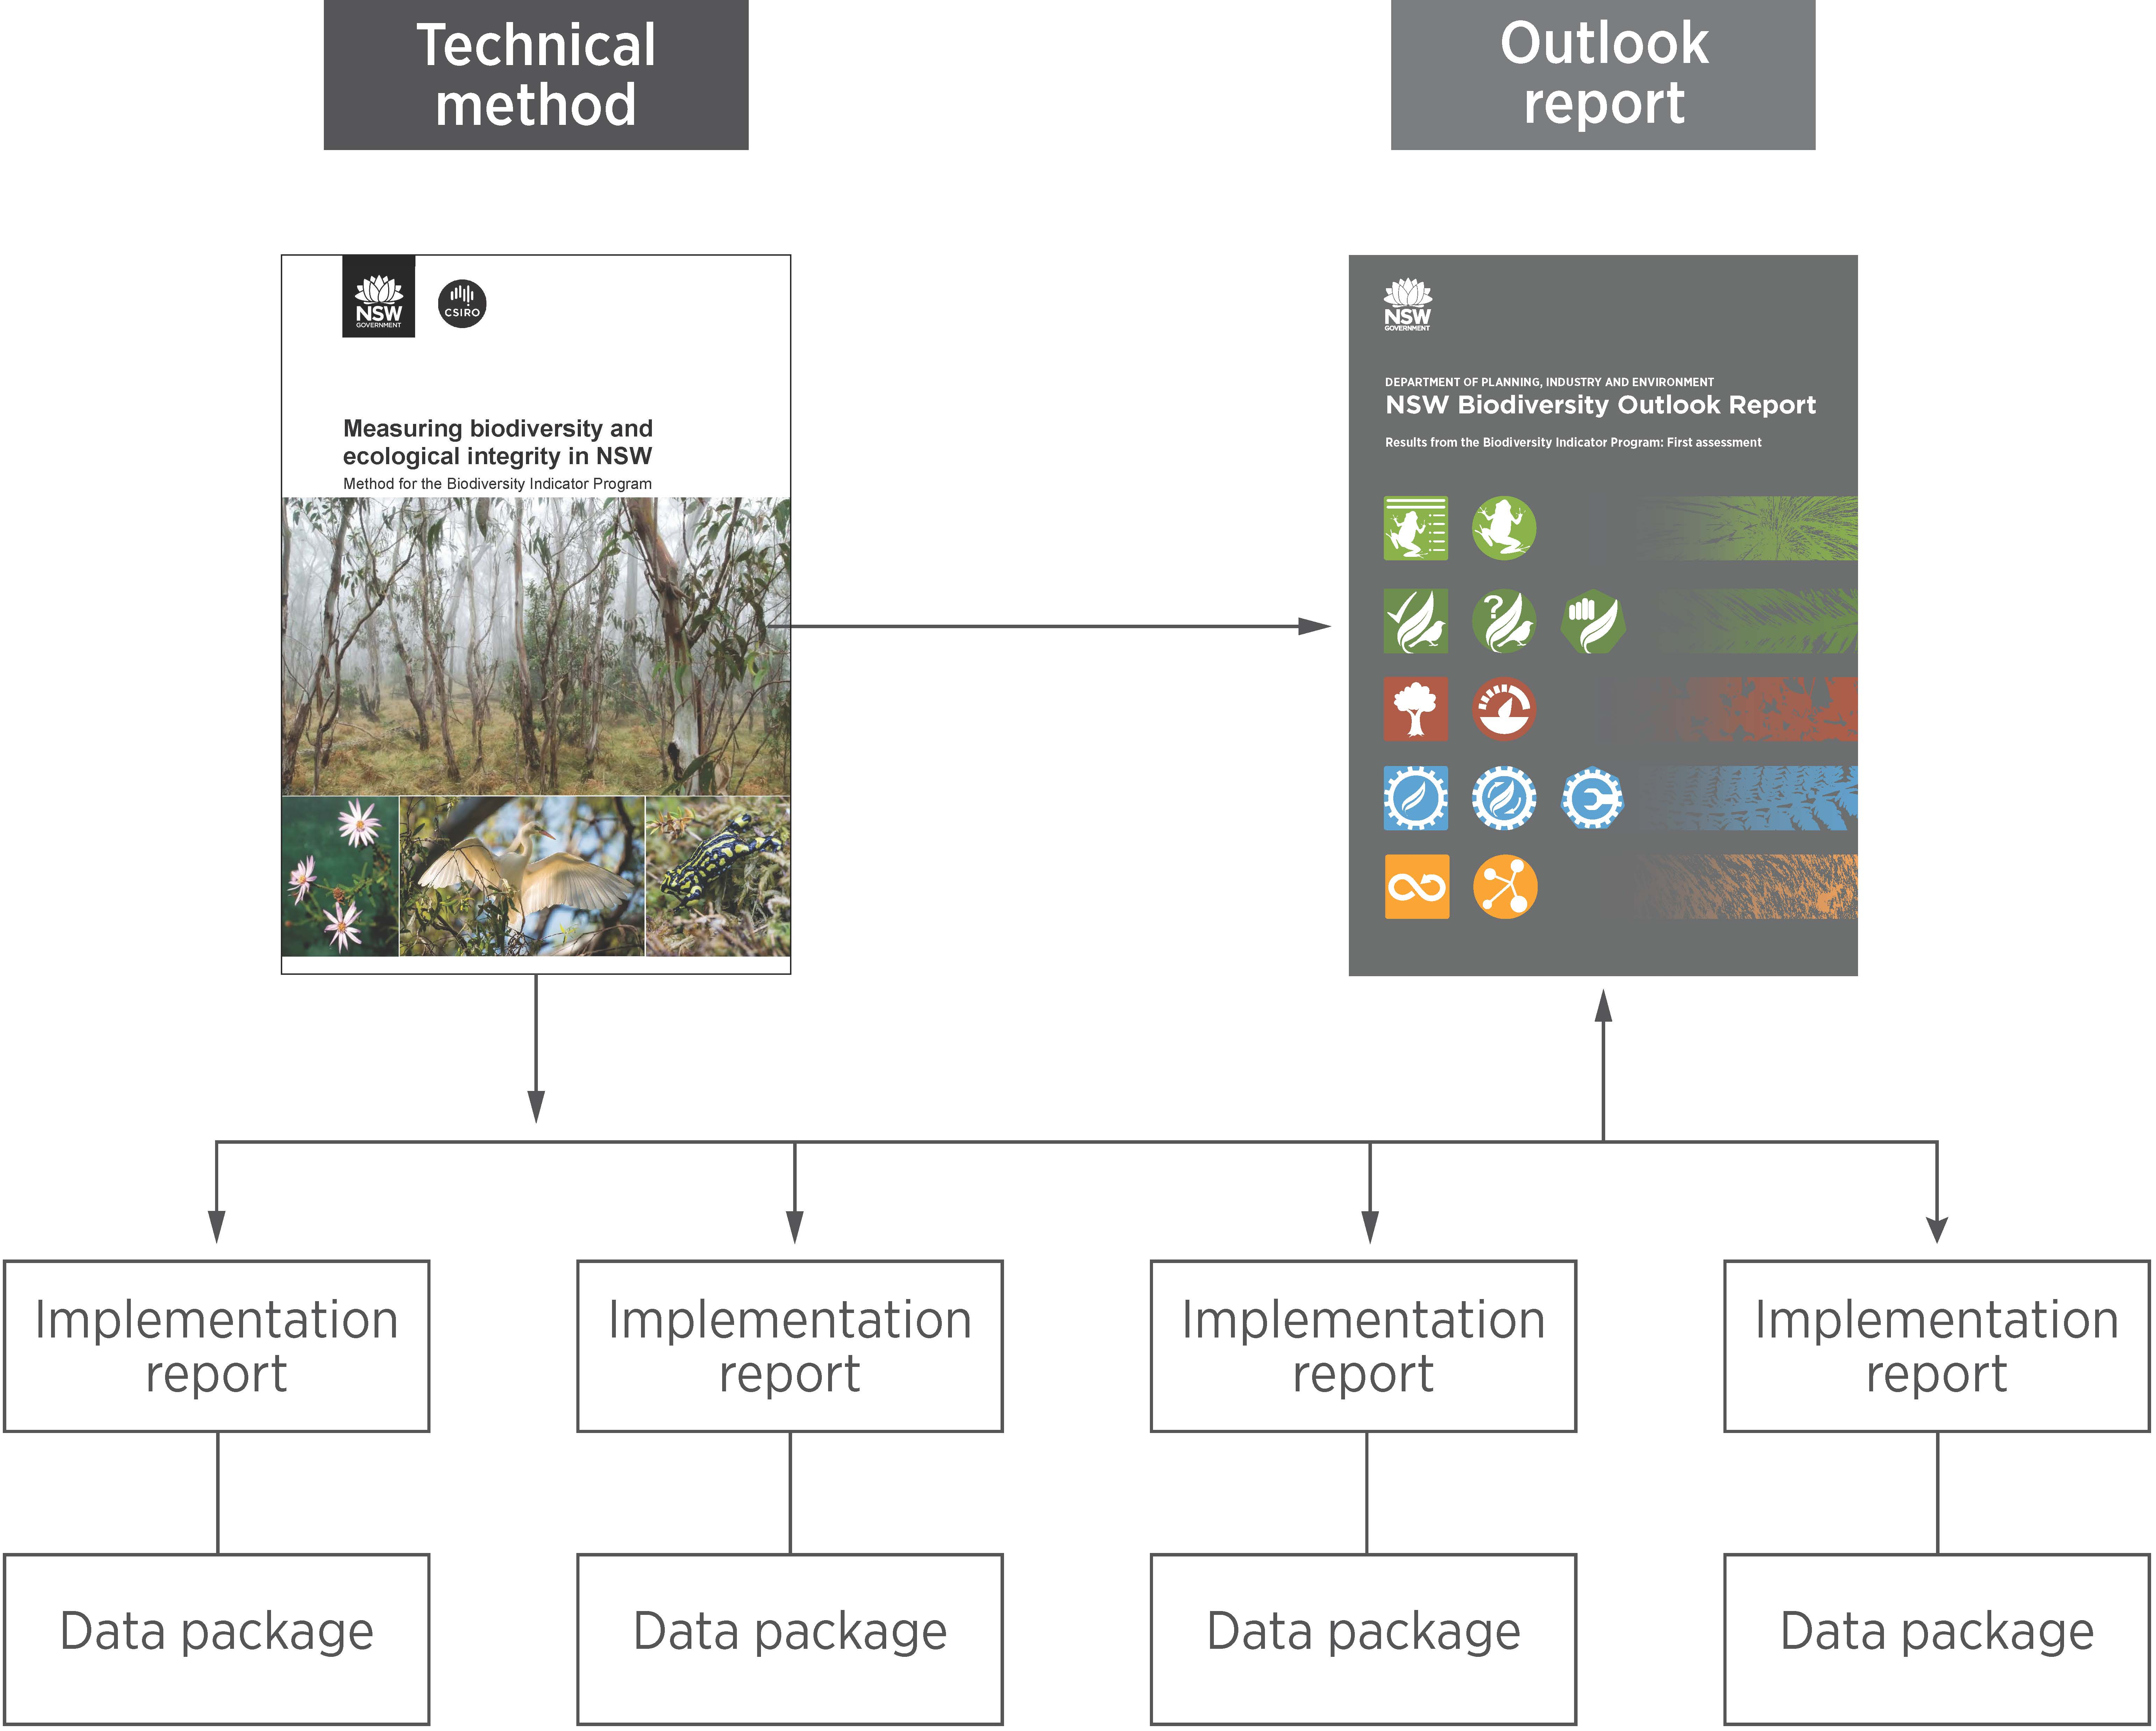 Tree diagram showing relationship between the Biodiversity Outlook Report, Method and implementation reports